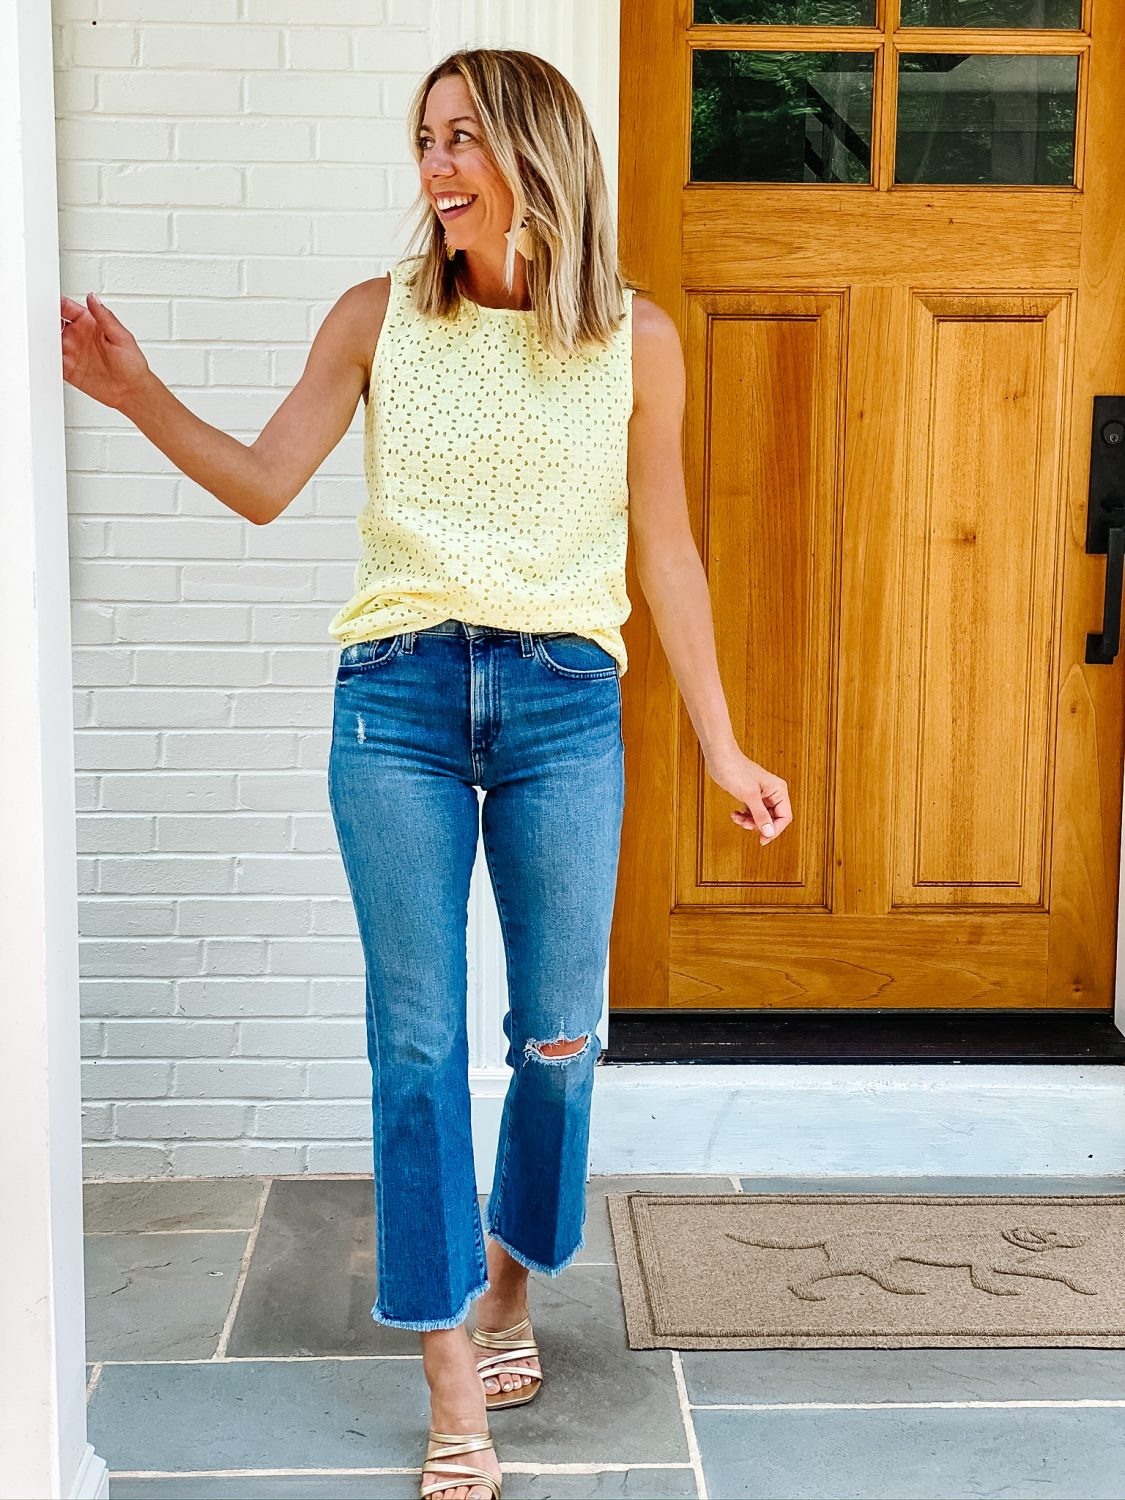 The Motherchic 1901 summer tops from Nordstrom